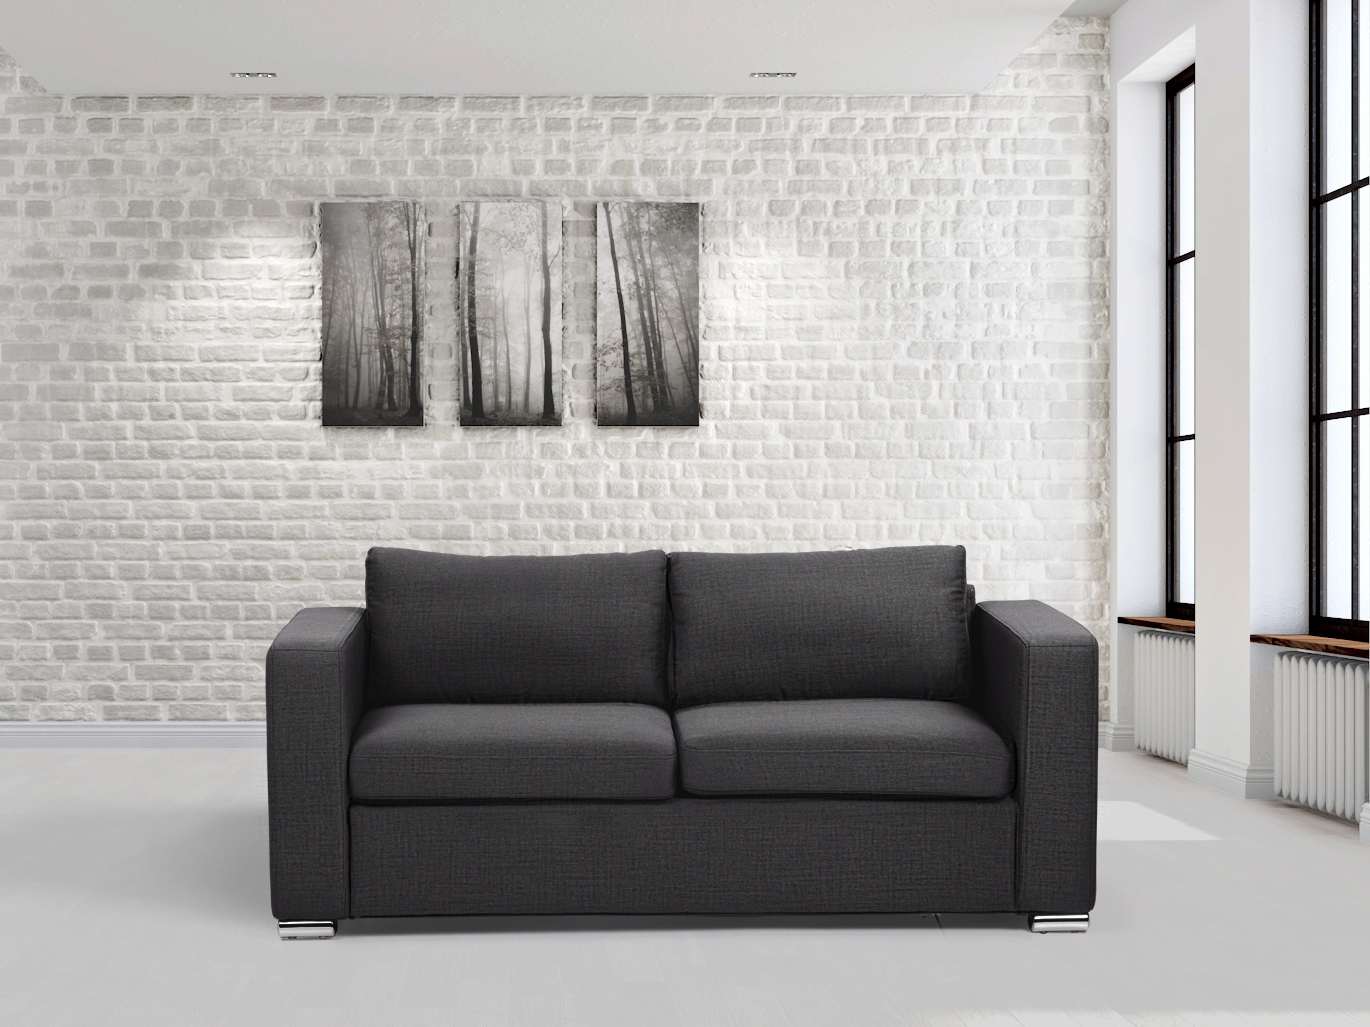 Image Is Loading Fabric Sofa Two Seater Living Room 3